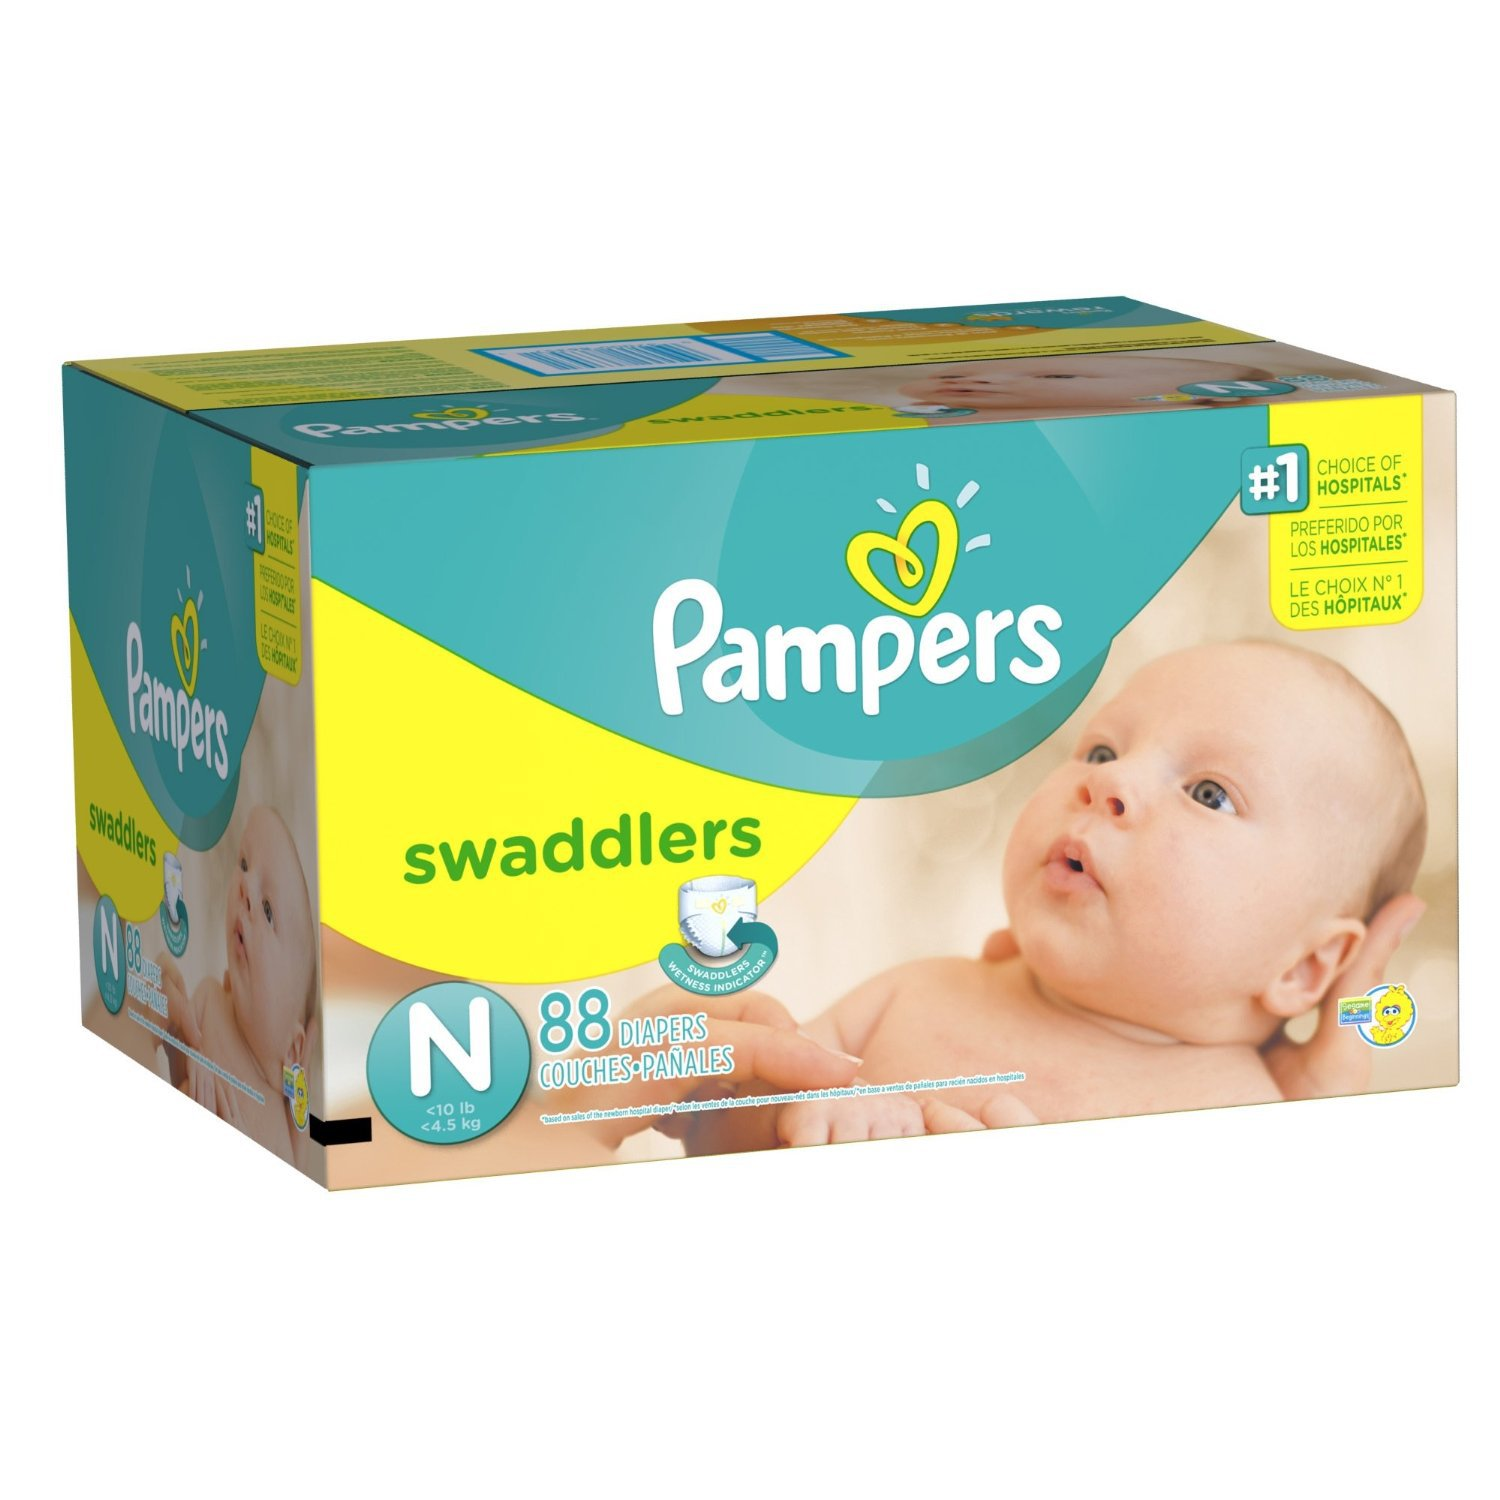 Wrap your baby in Pampers Swaddlers diapers, our most trusted comfort and protection and the #1 choice of US hospitals.* Our Blankie Soft™ diaper with a unique Absorb Away Liner™ pulls wetness and mess away from baby's skin to help keep your baby exsanew-49rs8091.gas: